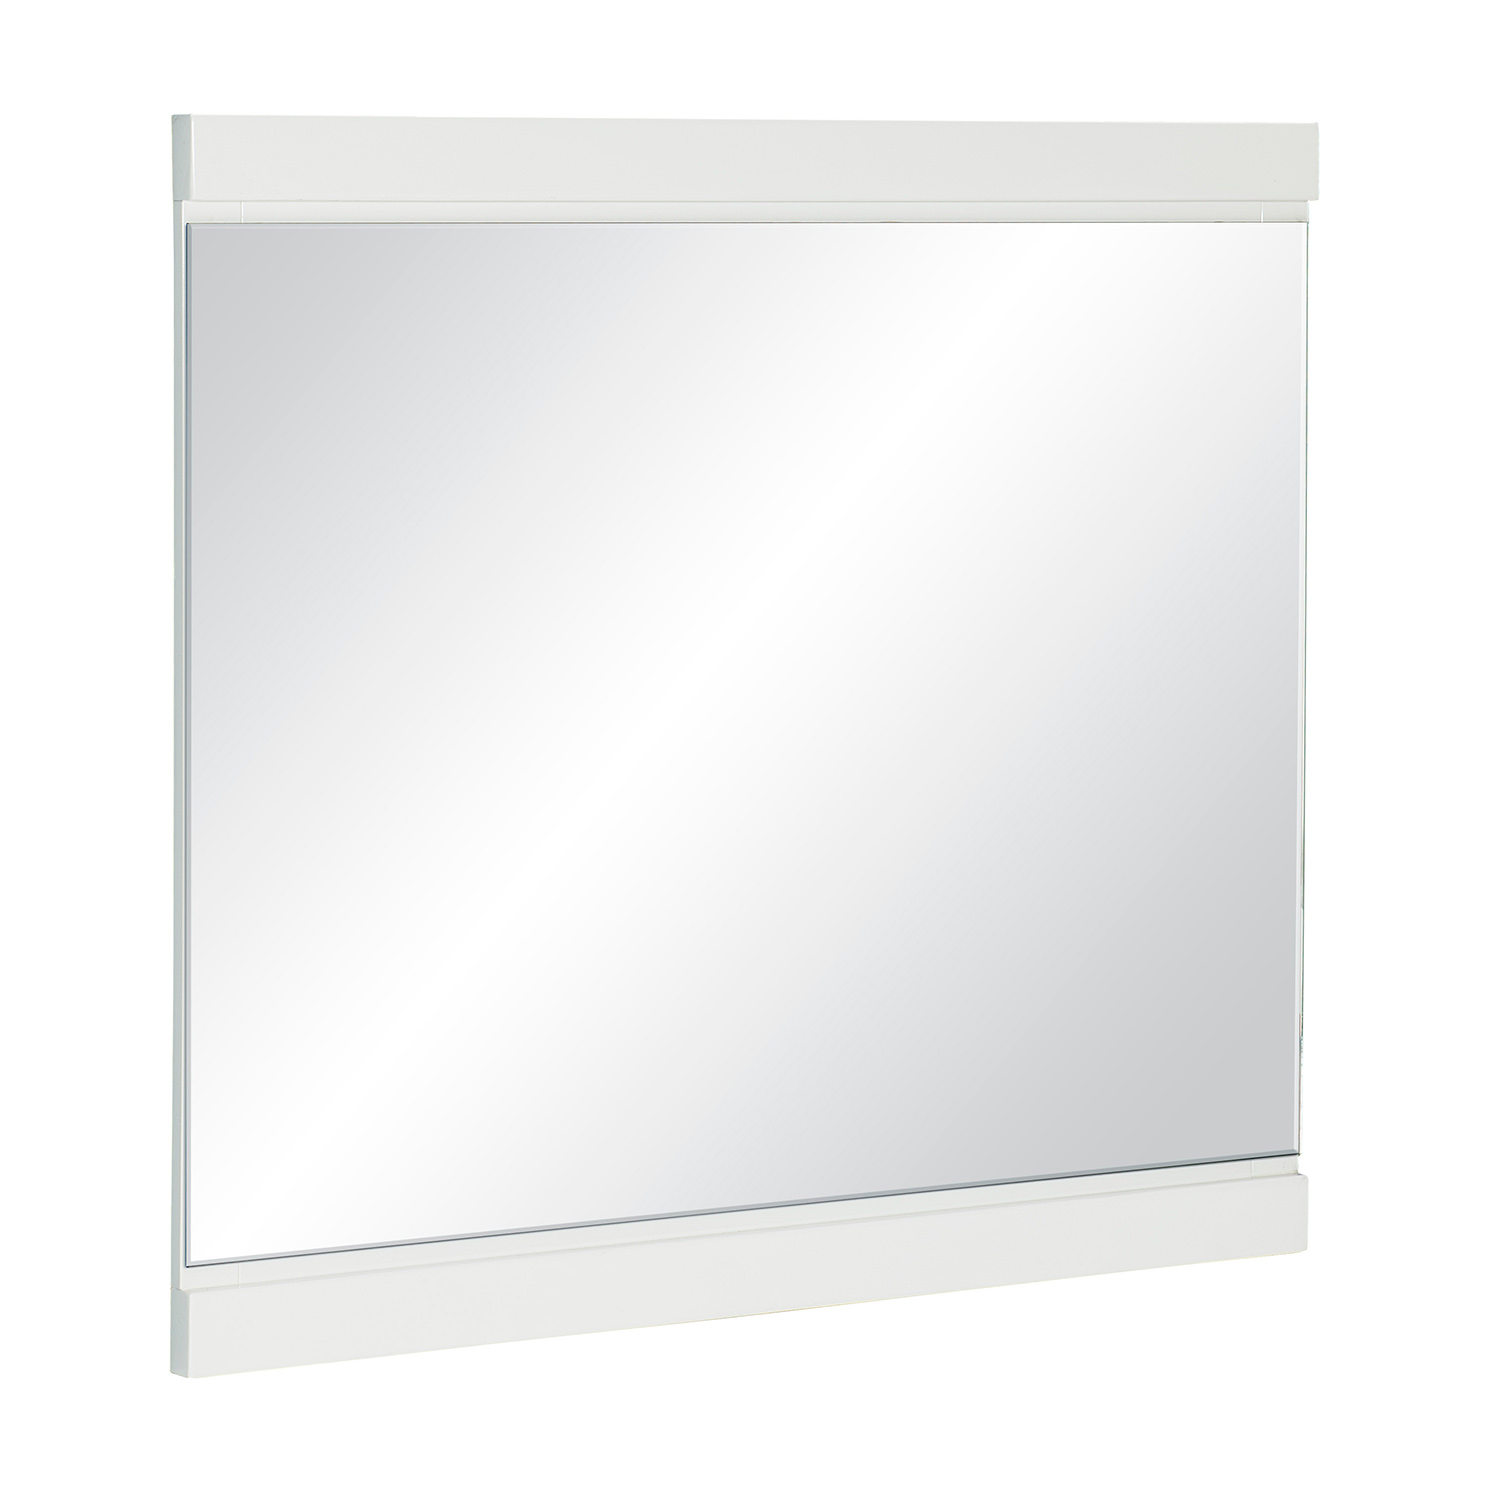 Homelegance Kerren or Keren Mirror - White High Gloss